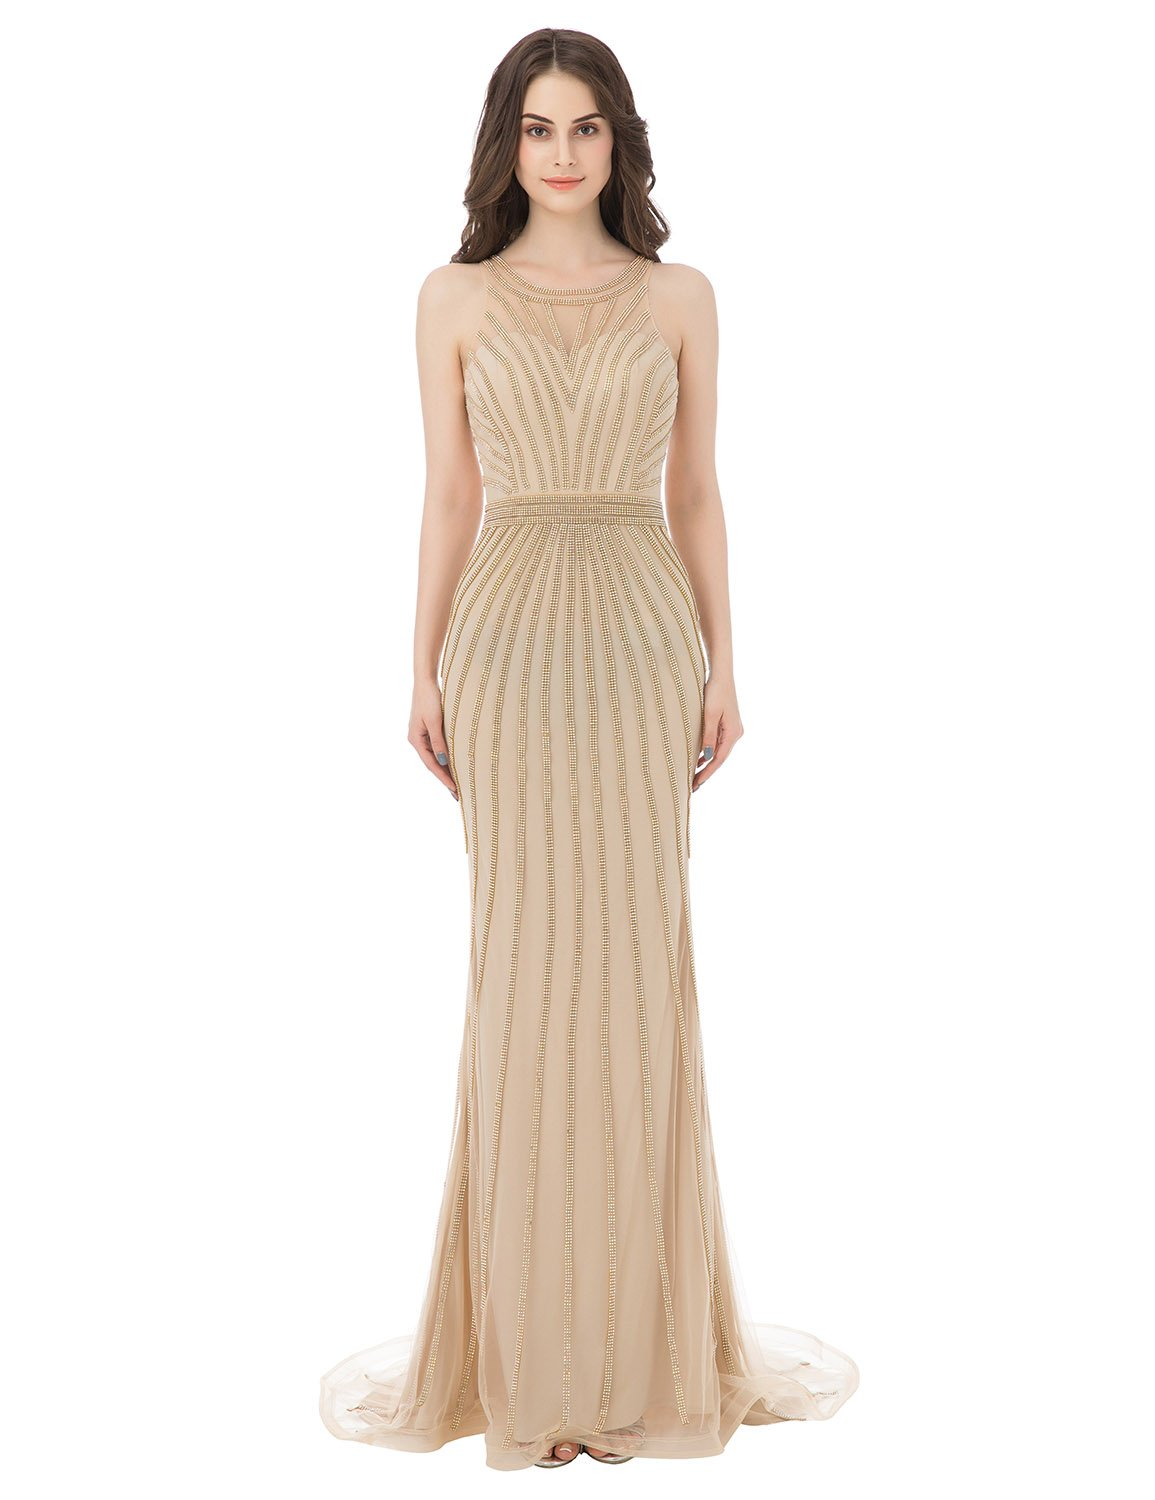 Sarahbridal Women's Beaded Bodice Prom Dresses Long Formal Evening Gowns Champagne US16